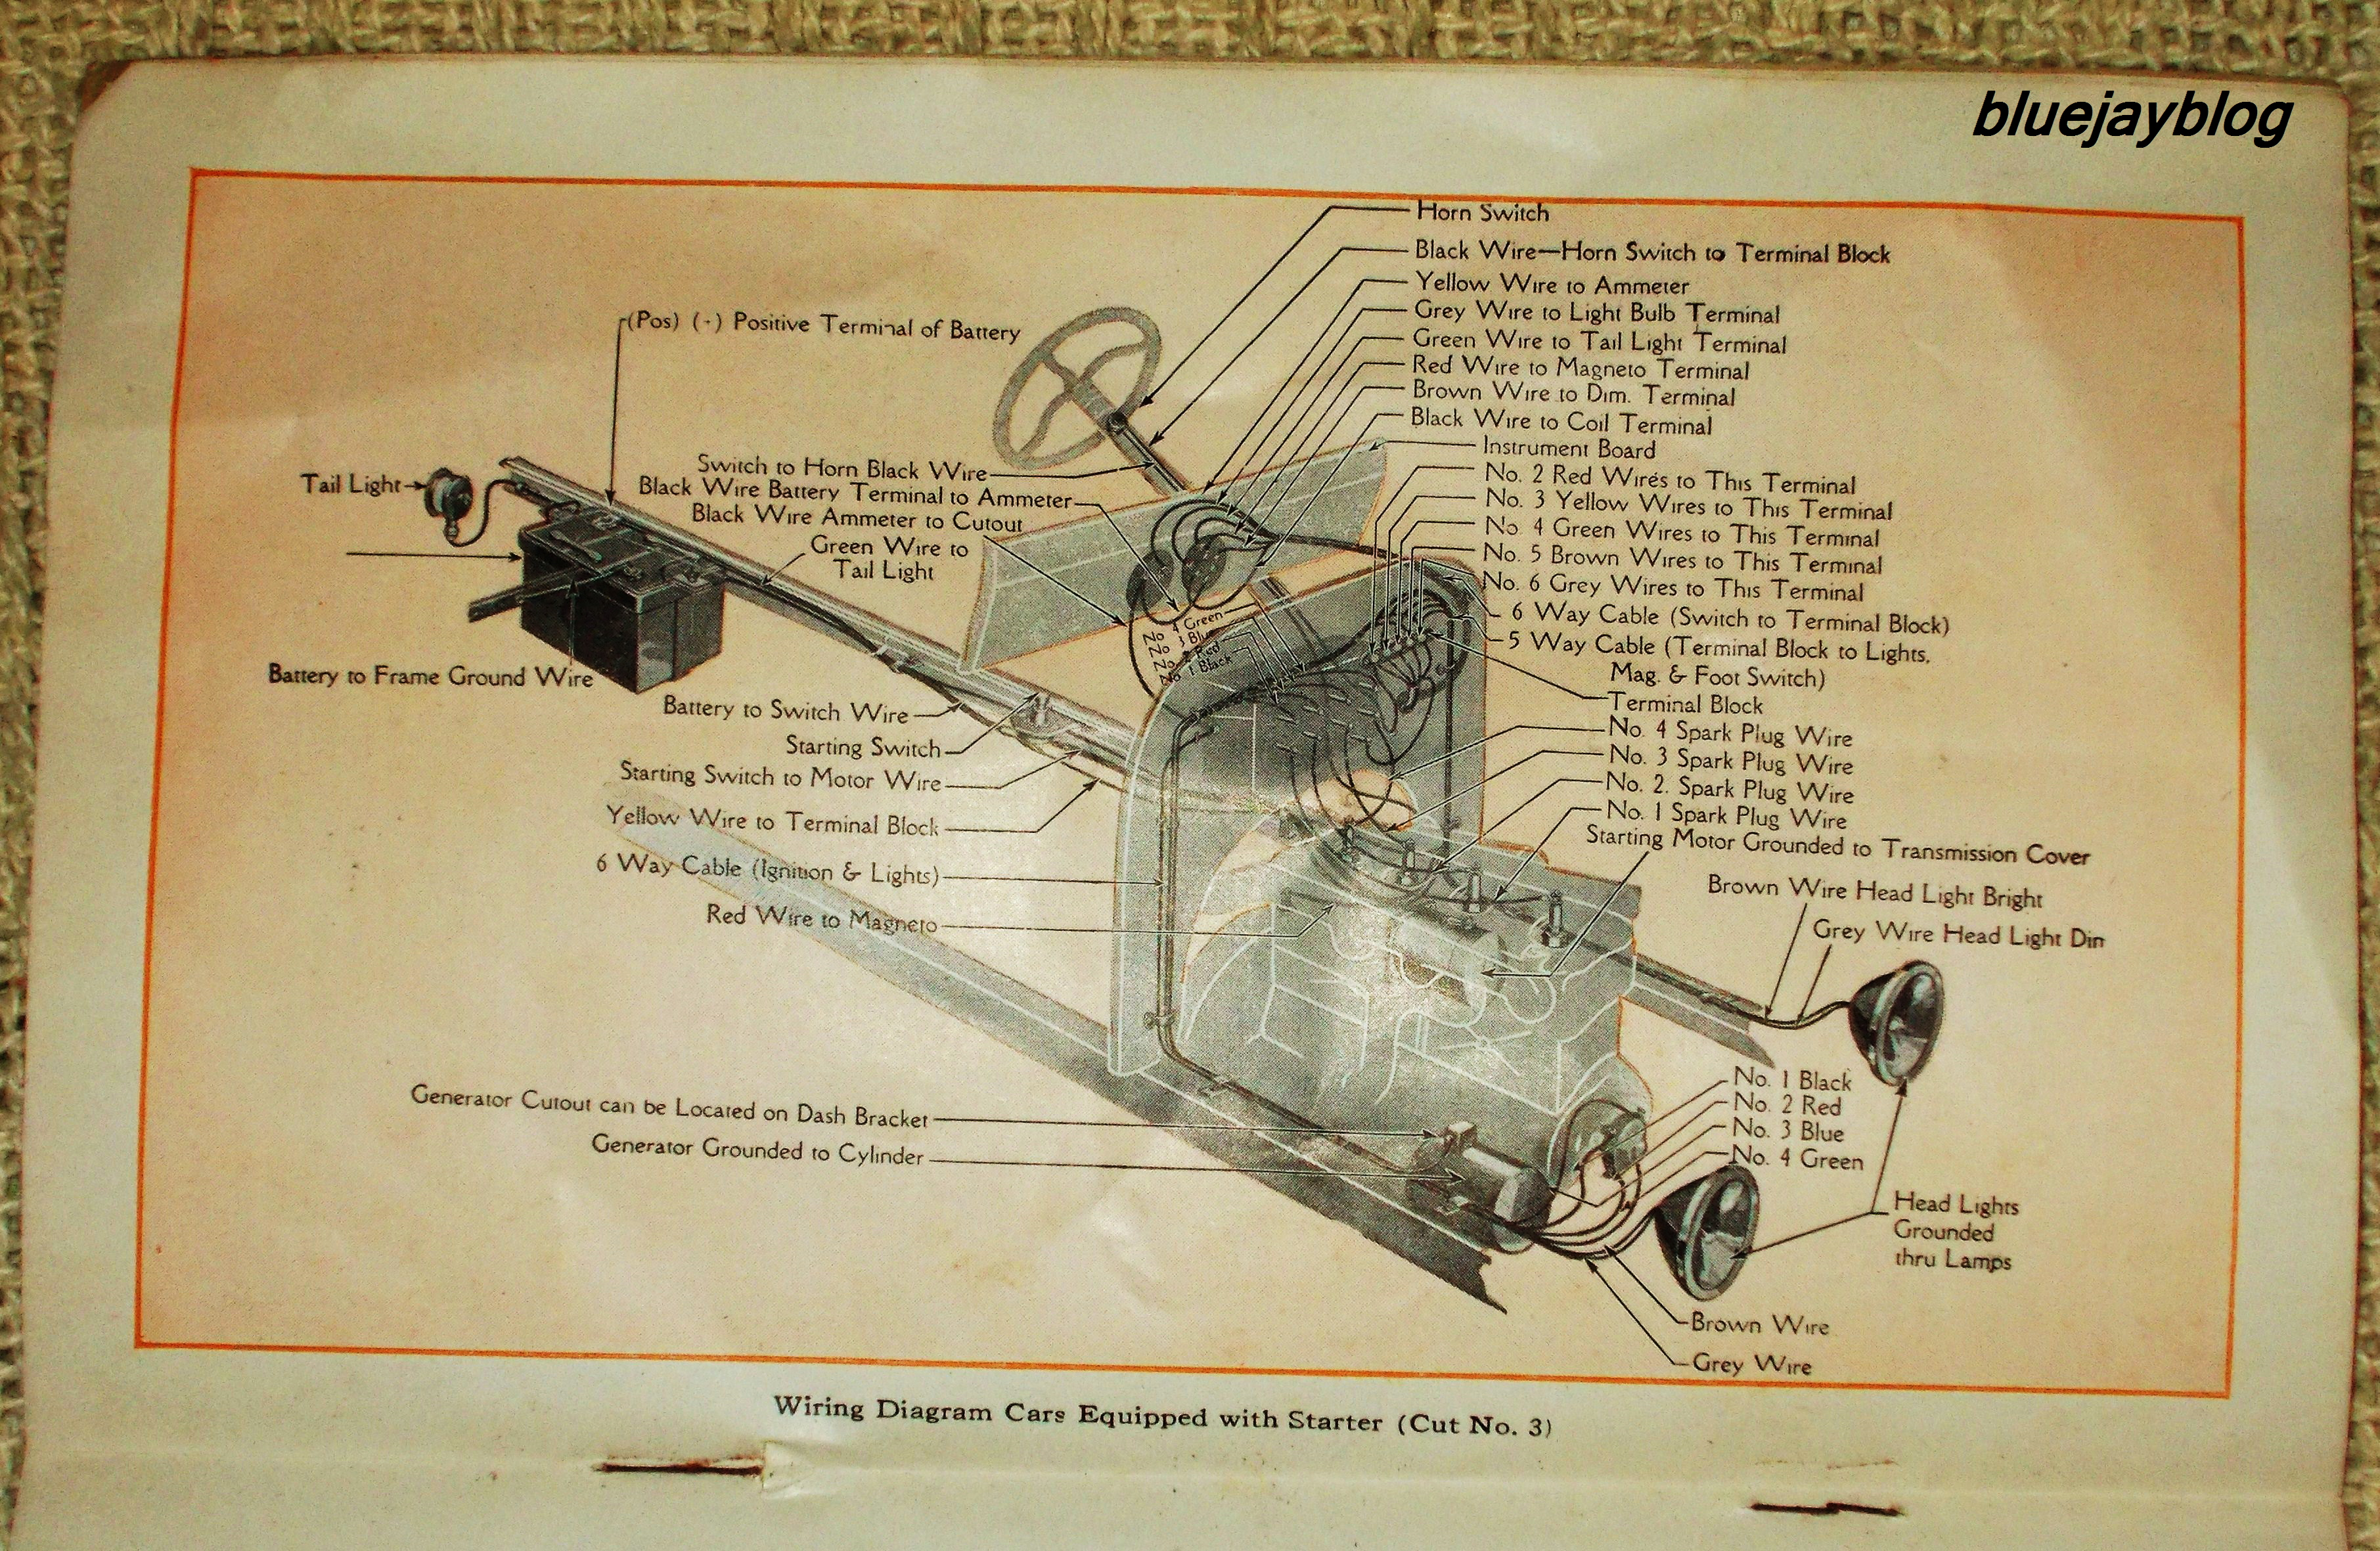 Vintage Car Paraphernalia Bluejayblog Simplicity Ignition Switch Wiring Diagram By Contemporary Standards The Model T Harness Was Very Primitive And Simple A Benefit To This Is That Owners Of These Vehicles Could